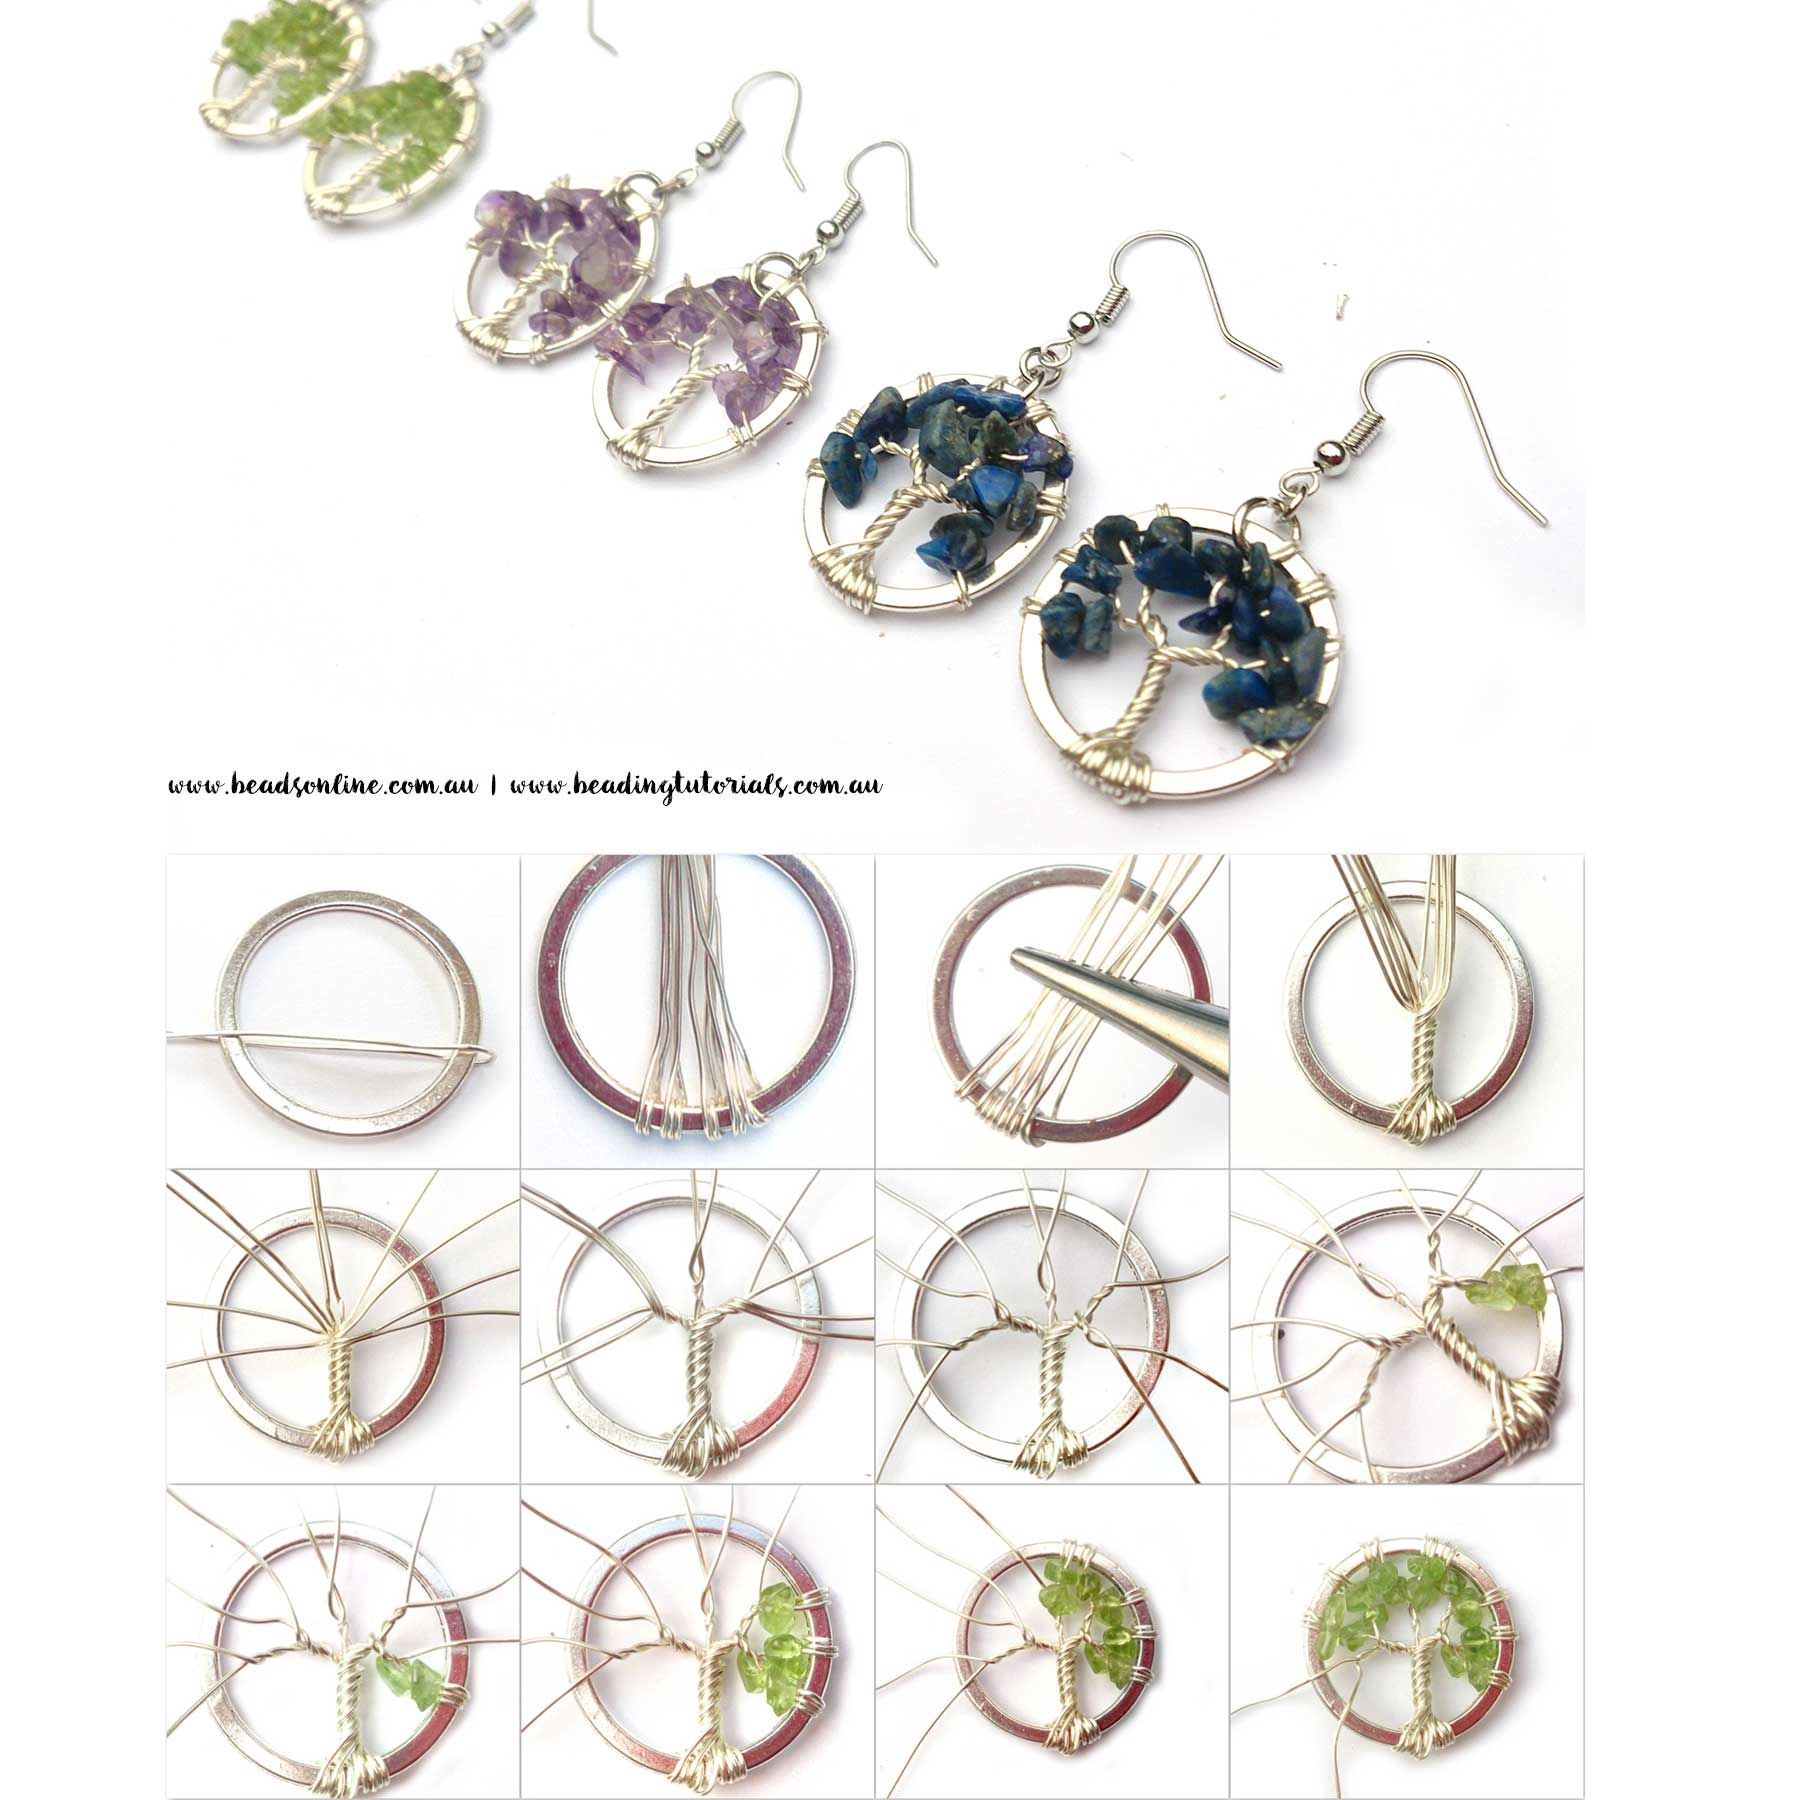 Tree of Life Earring Tutorial | Jewelry | Pinterest | Tutorials ...